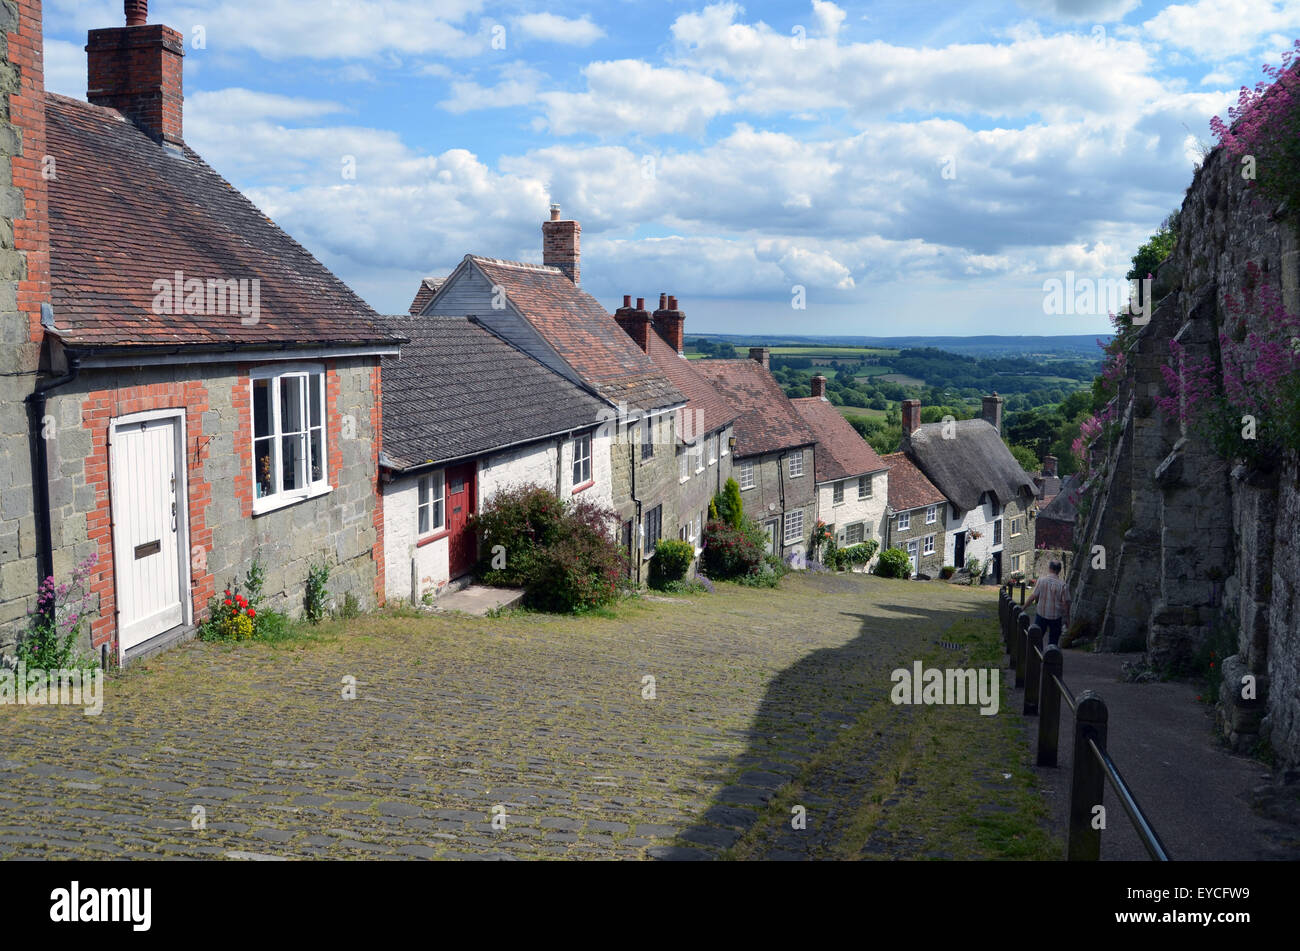 Gold Hill, Shaftesbury, Dorset, where the iconic 1973 Hovis advert was filmed. UK 2015 - Stock Image